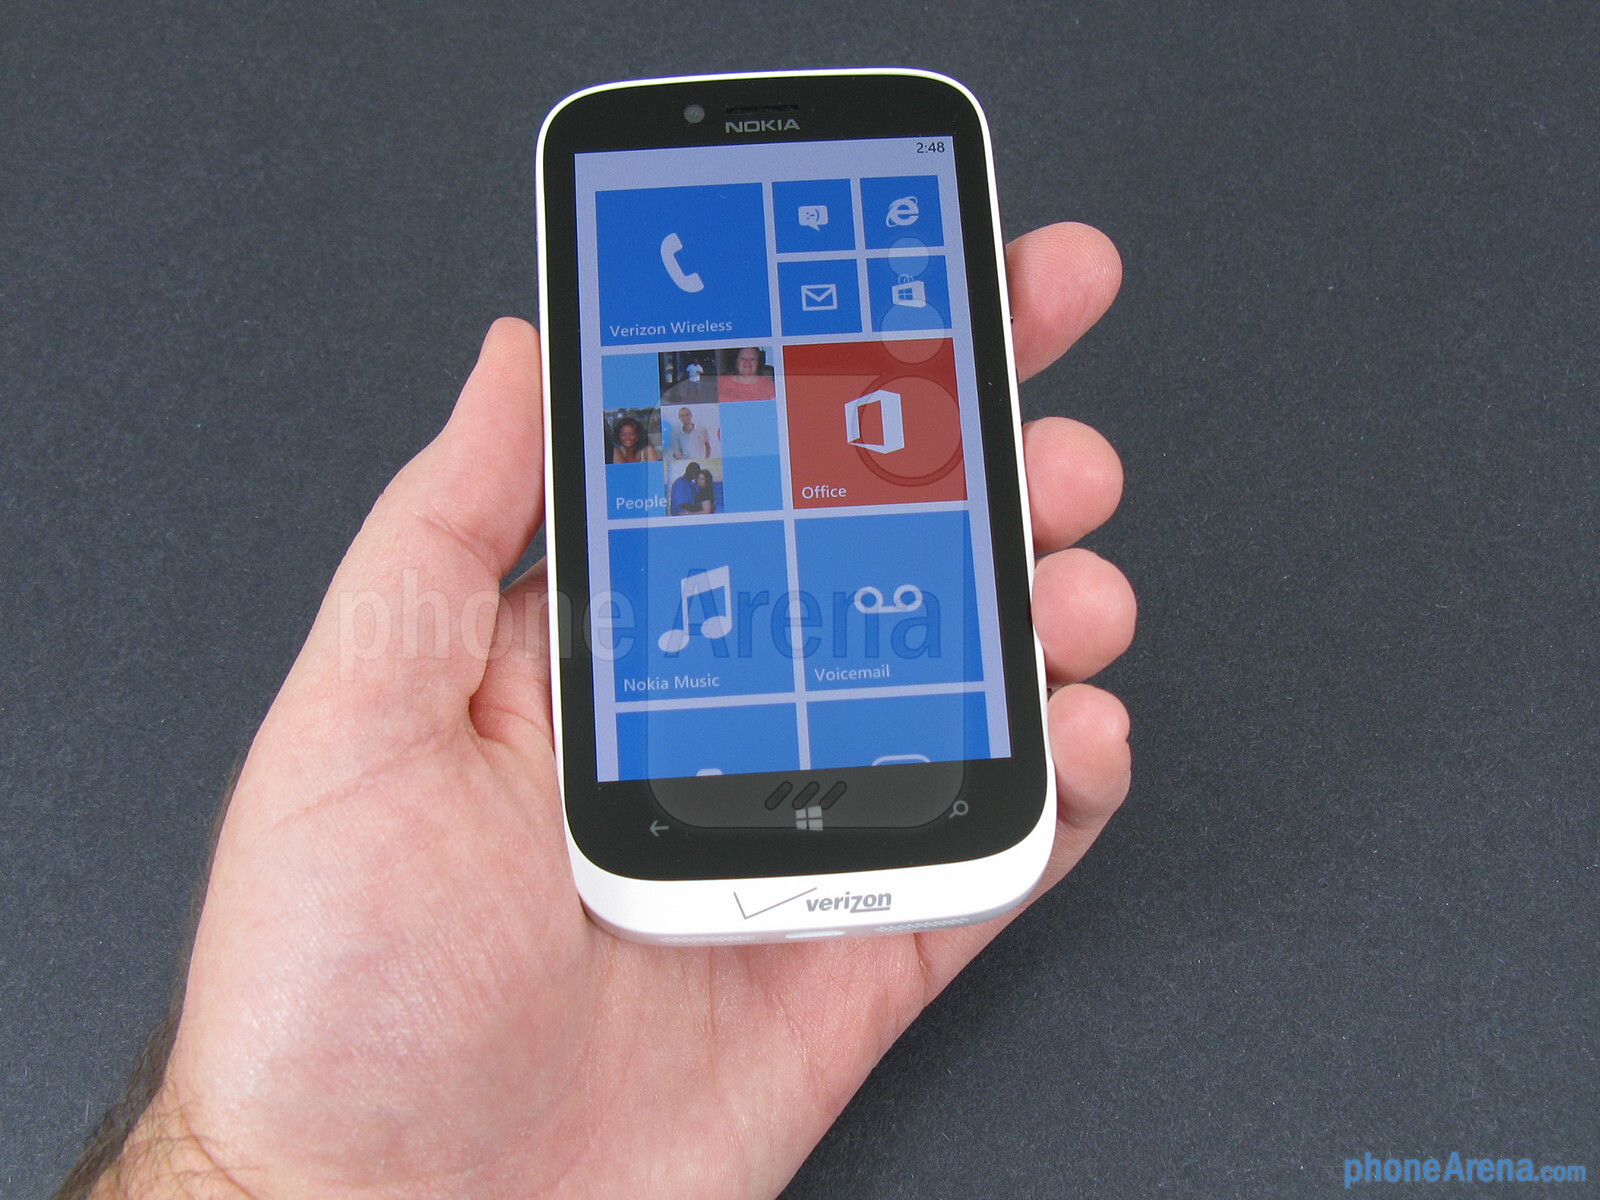 The Nokia Lumia 822 has gently rounded edges and a sculptured body - Nokia  Lumia 822